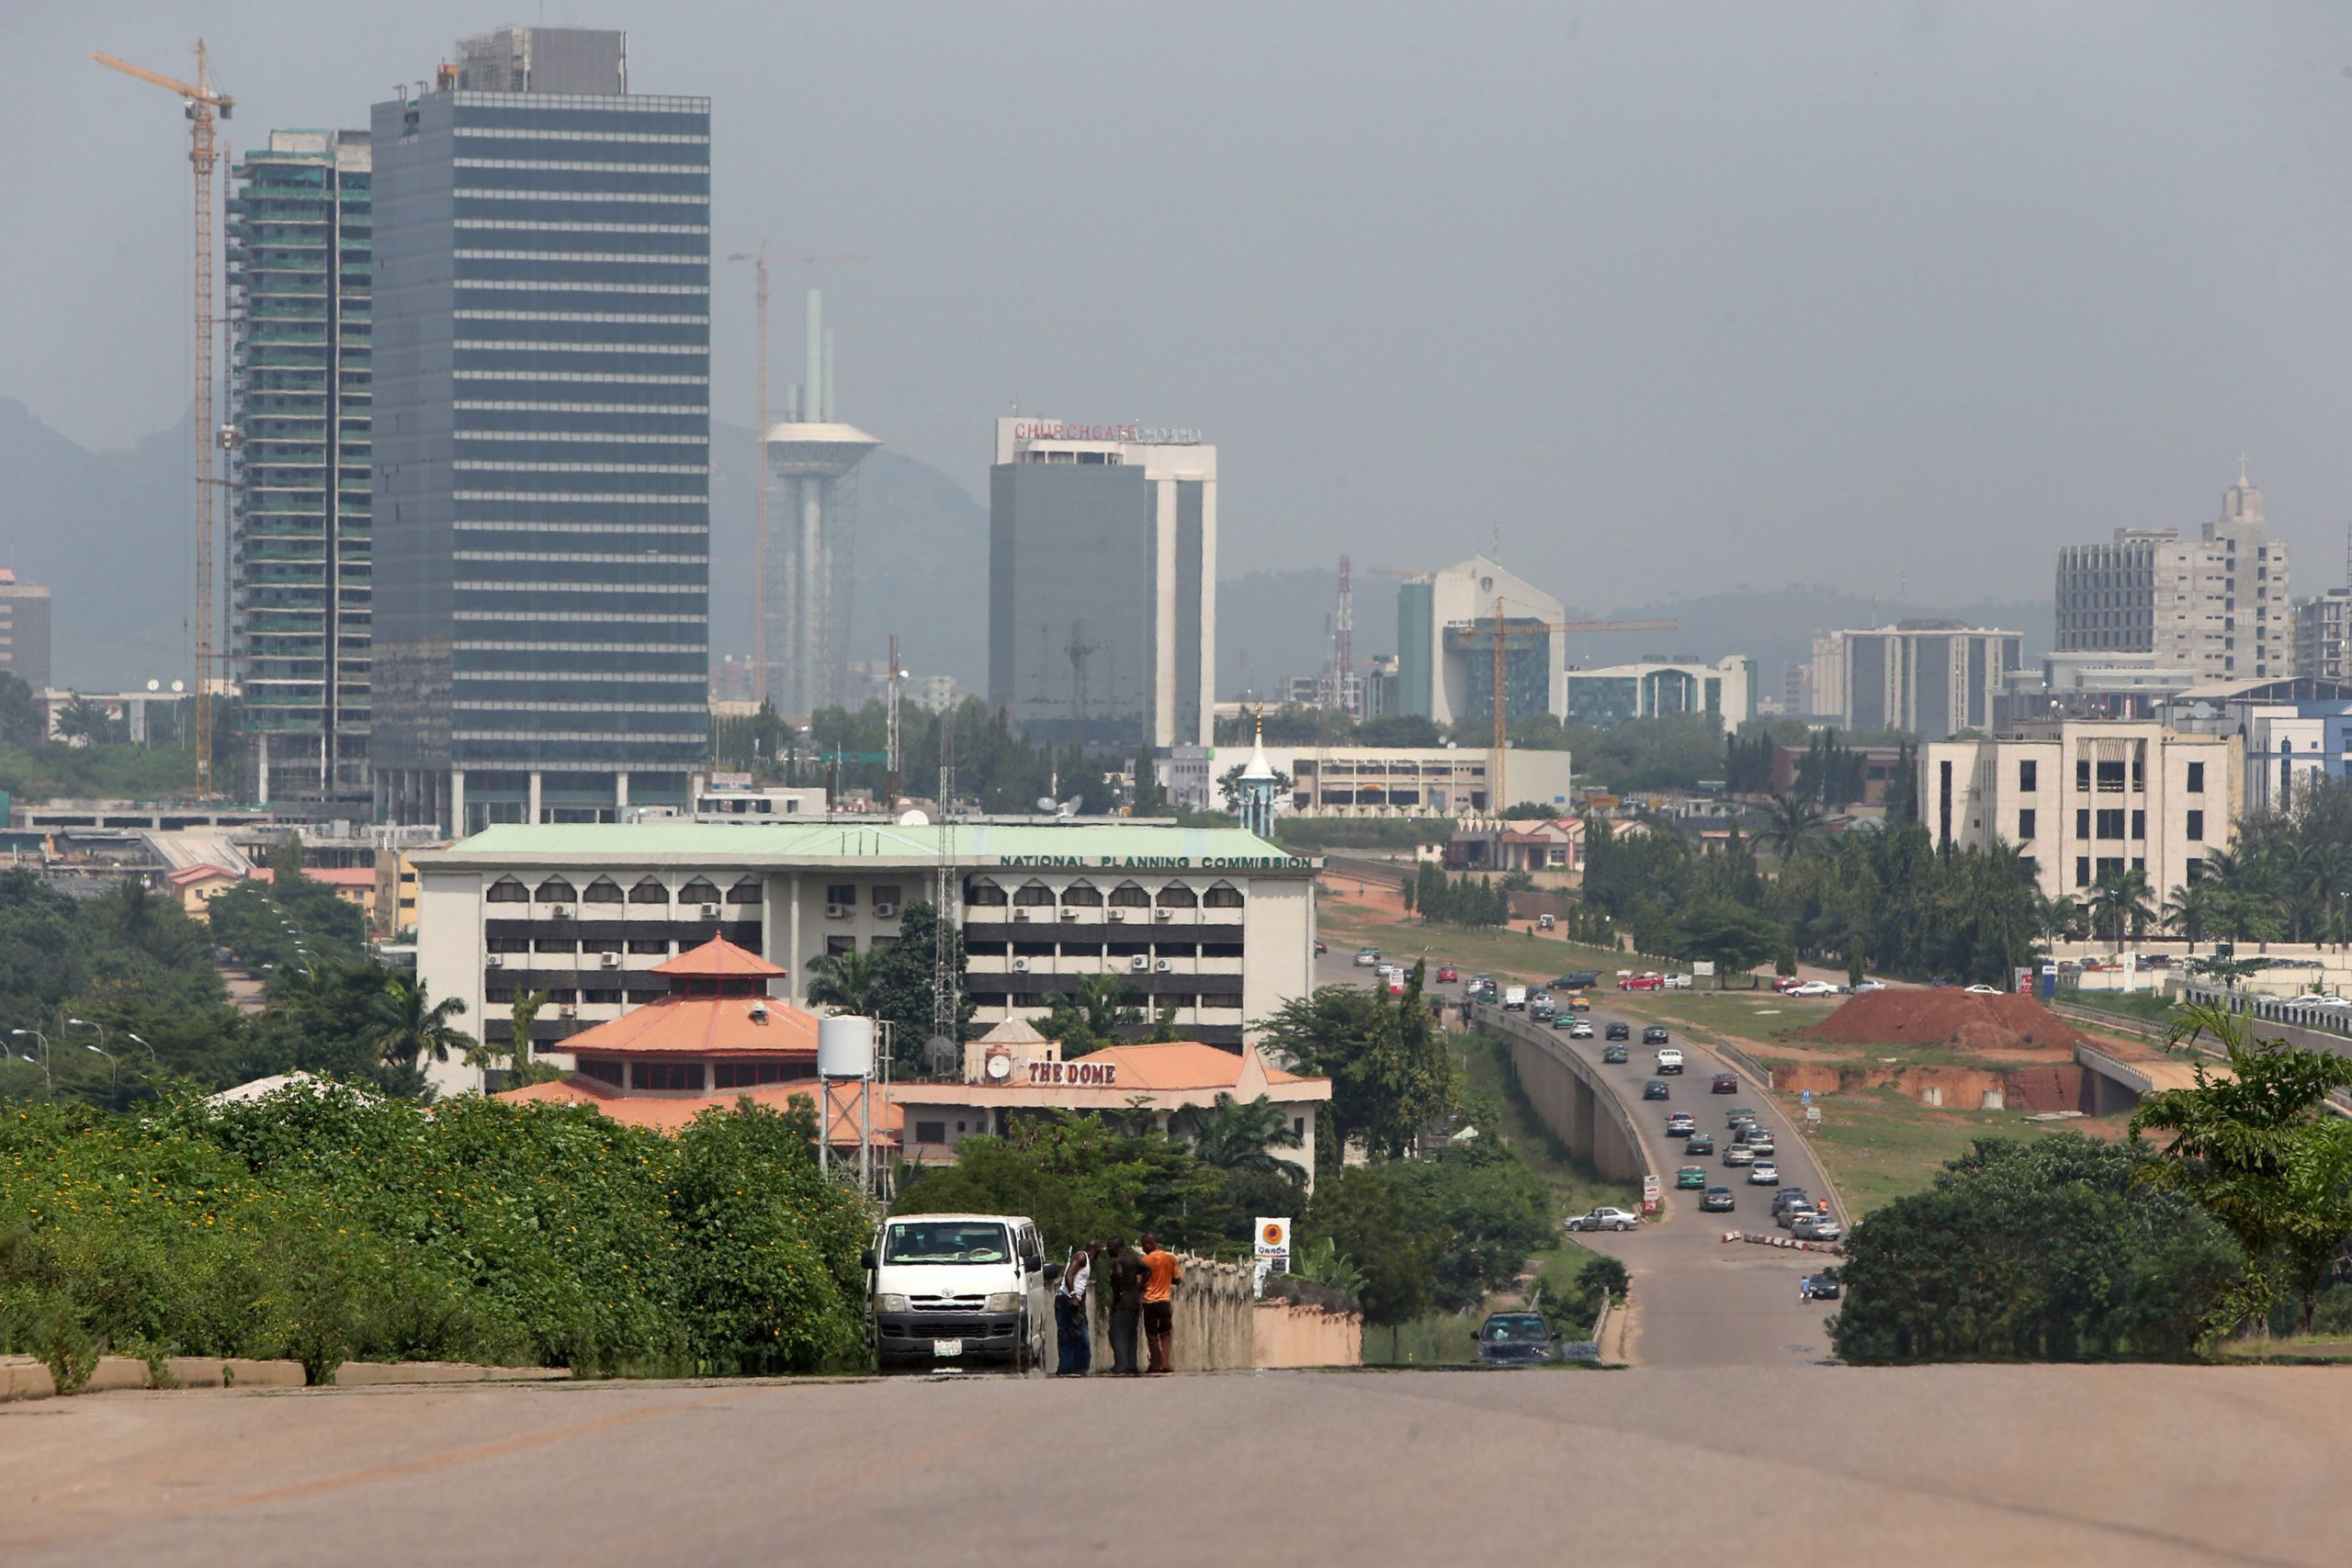 General Economy In Nigeria's Capital